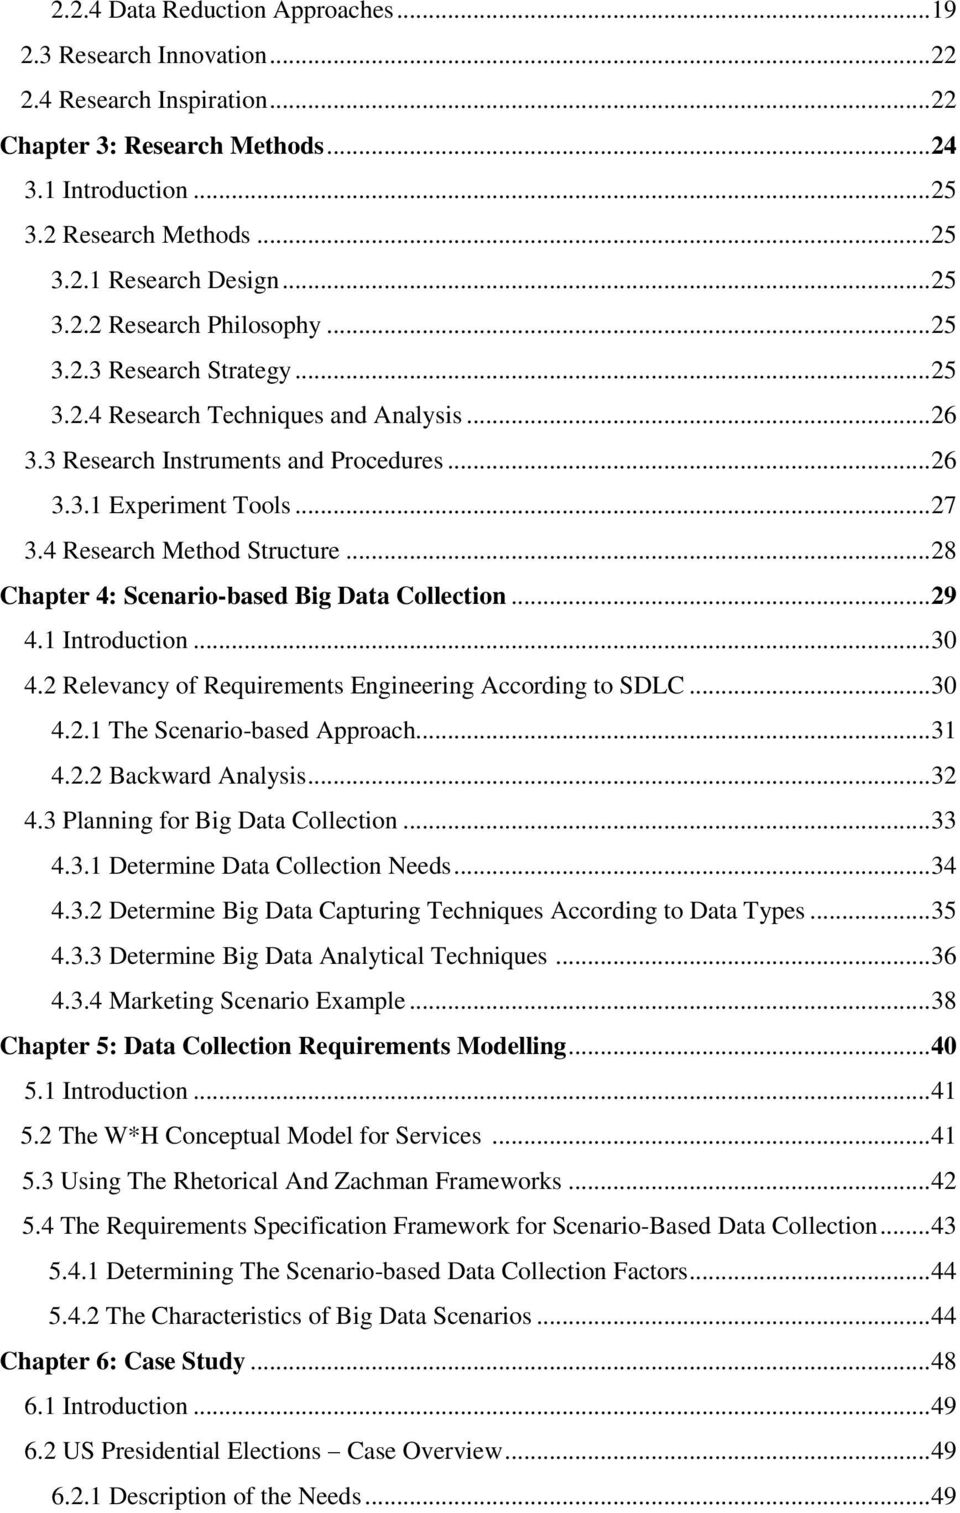 4 Research Method Structure... 28 Chapter 4: Scenario-based Big Data Collection... 29 4.1 Introduction... 30 4.2 Relevancy of Requirements Engineering According to SDLC... 30 4.2.1 The Scenario-based Approach.